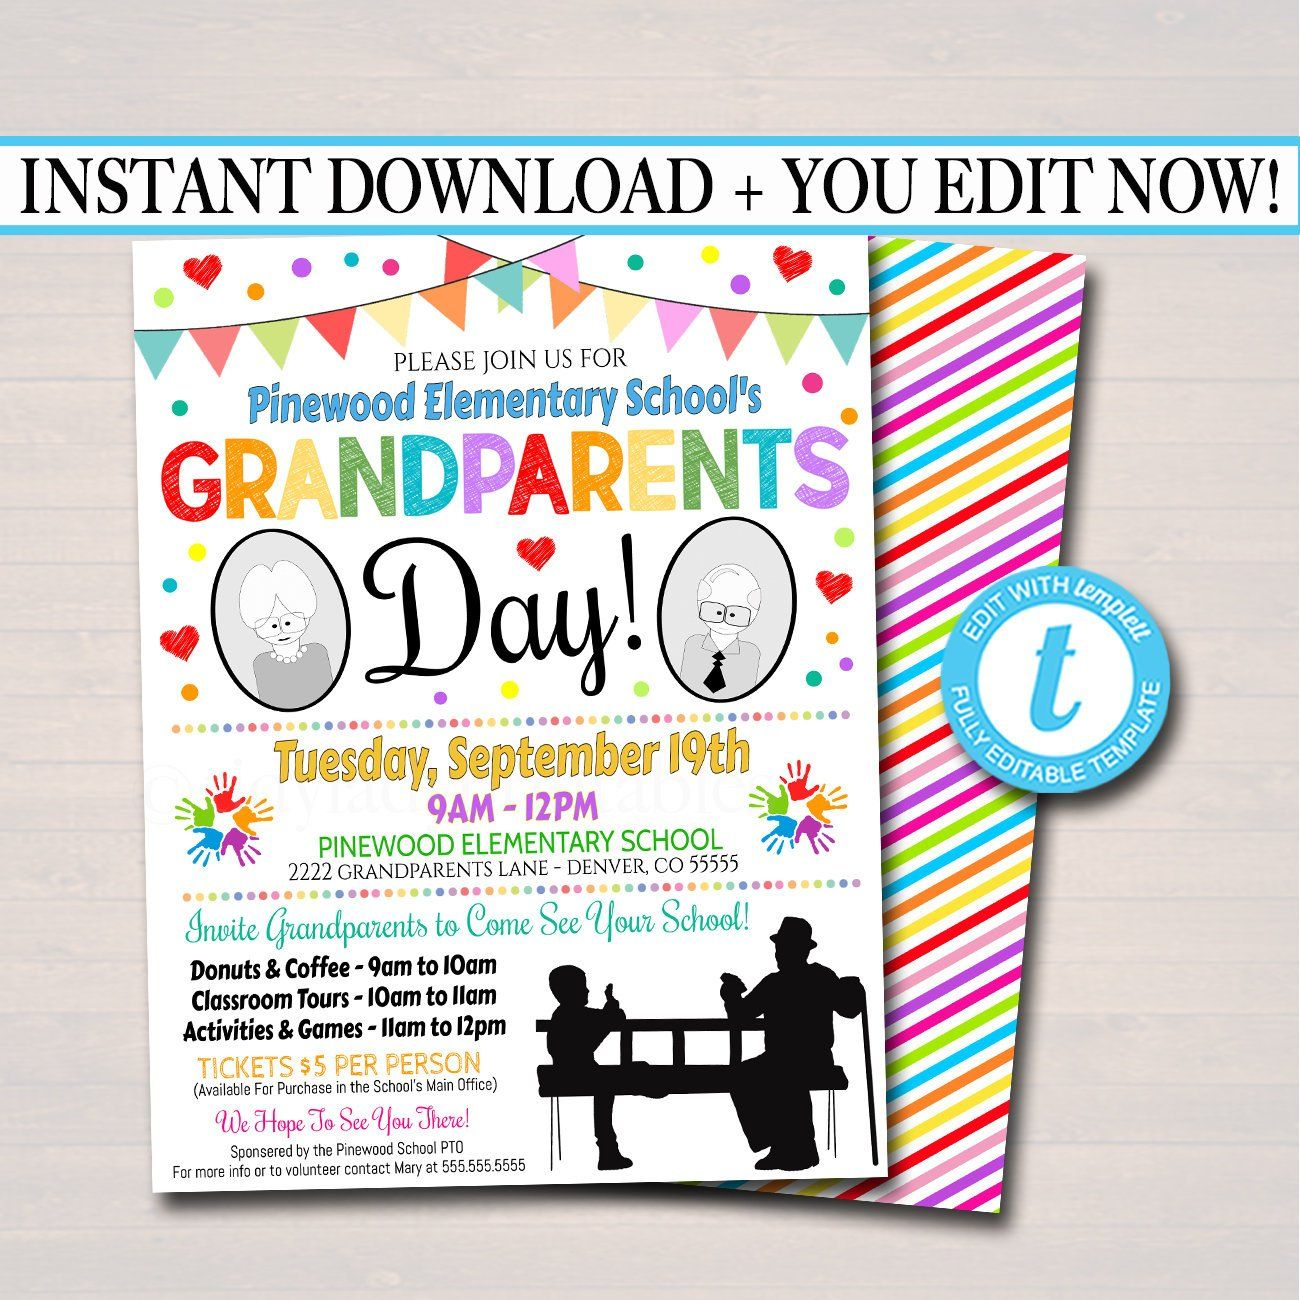 Editable Grandparents Day Invite Breakfast Social Printable Etsy School Fundraisers Grandparents Day Charity Work Ideas